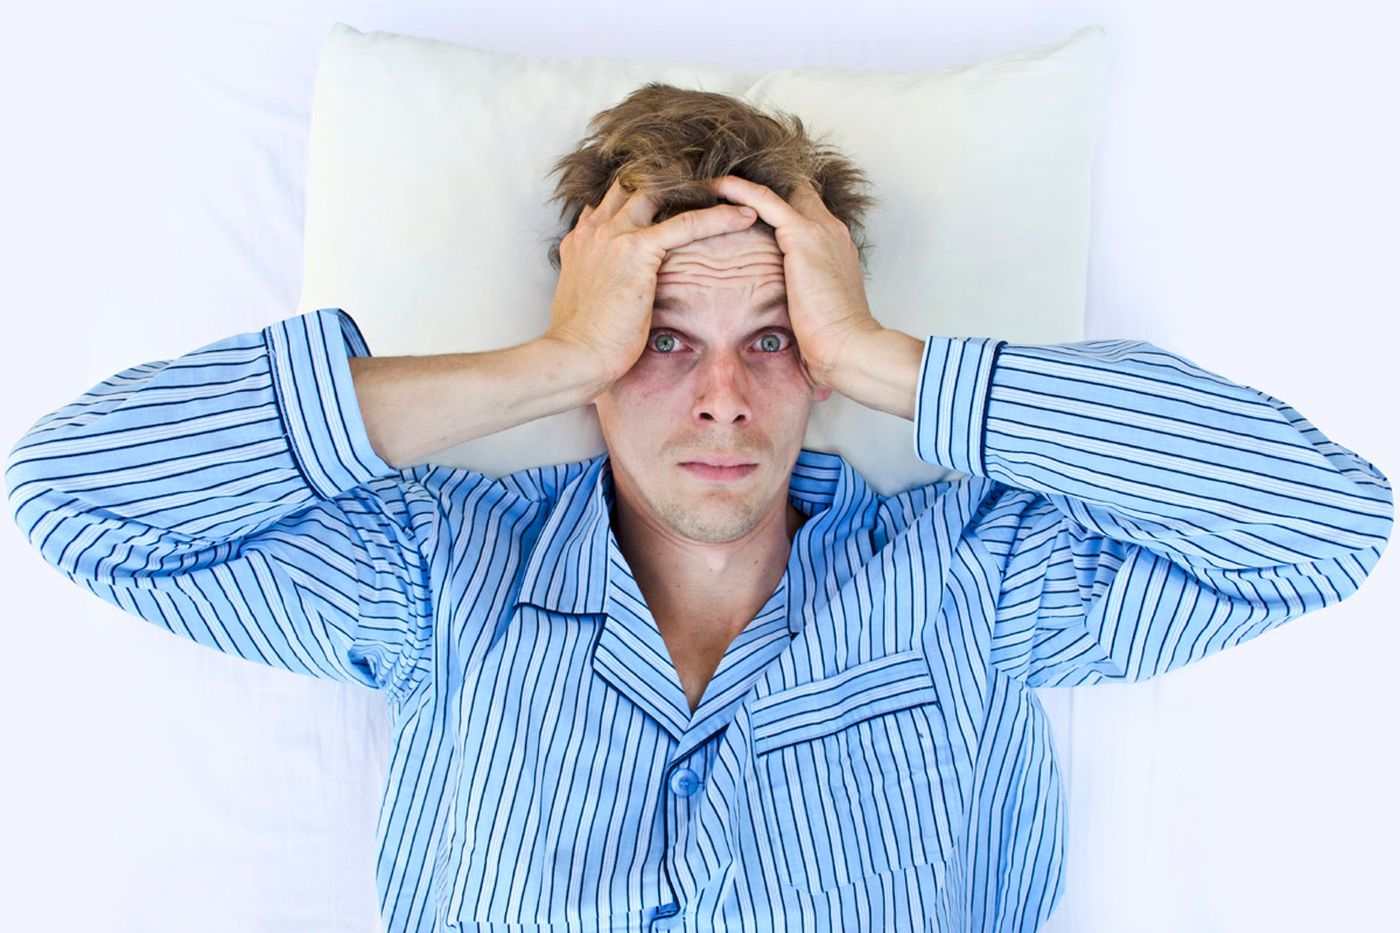 Strange but true: Sleep deprivation can help depression. Penn scientists want to know why